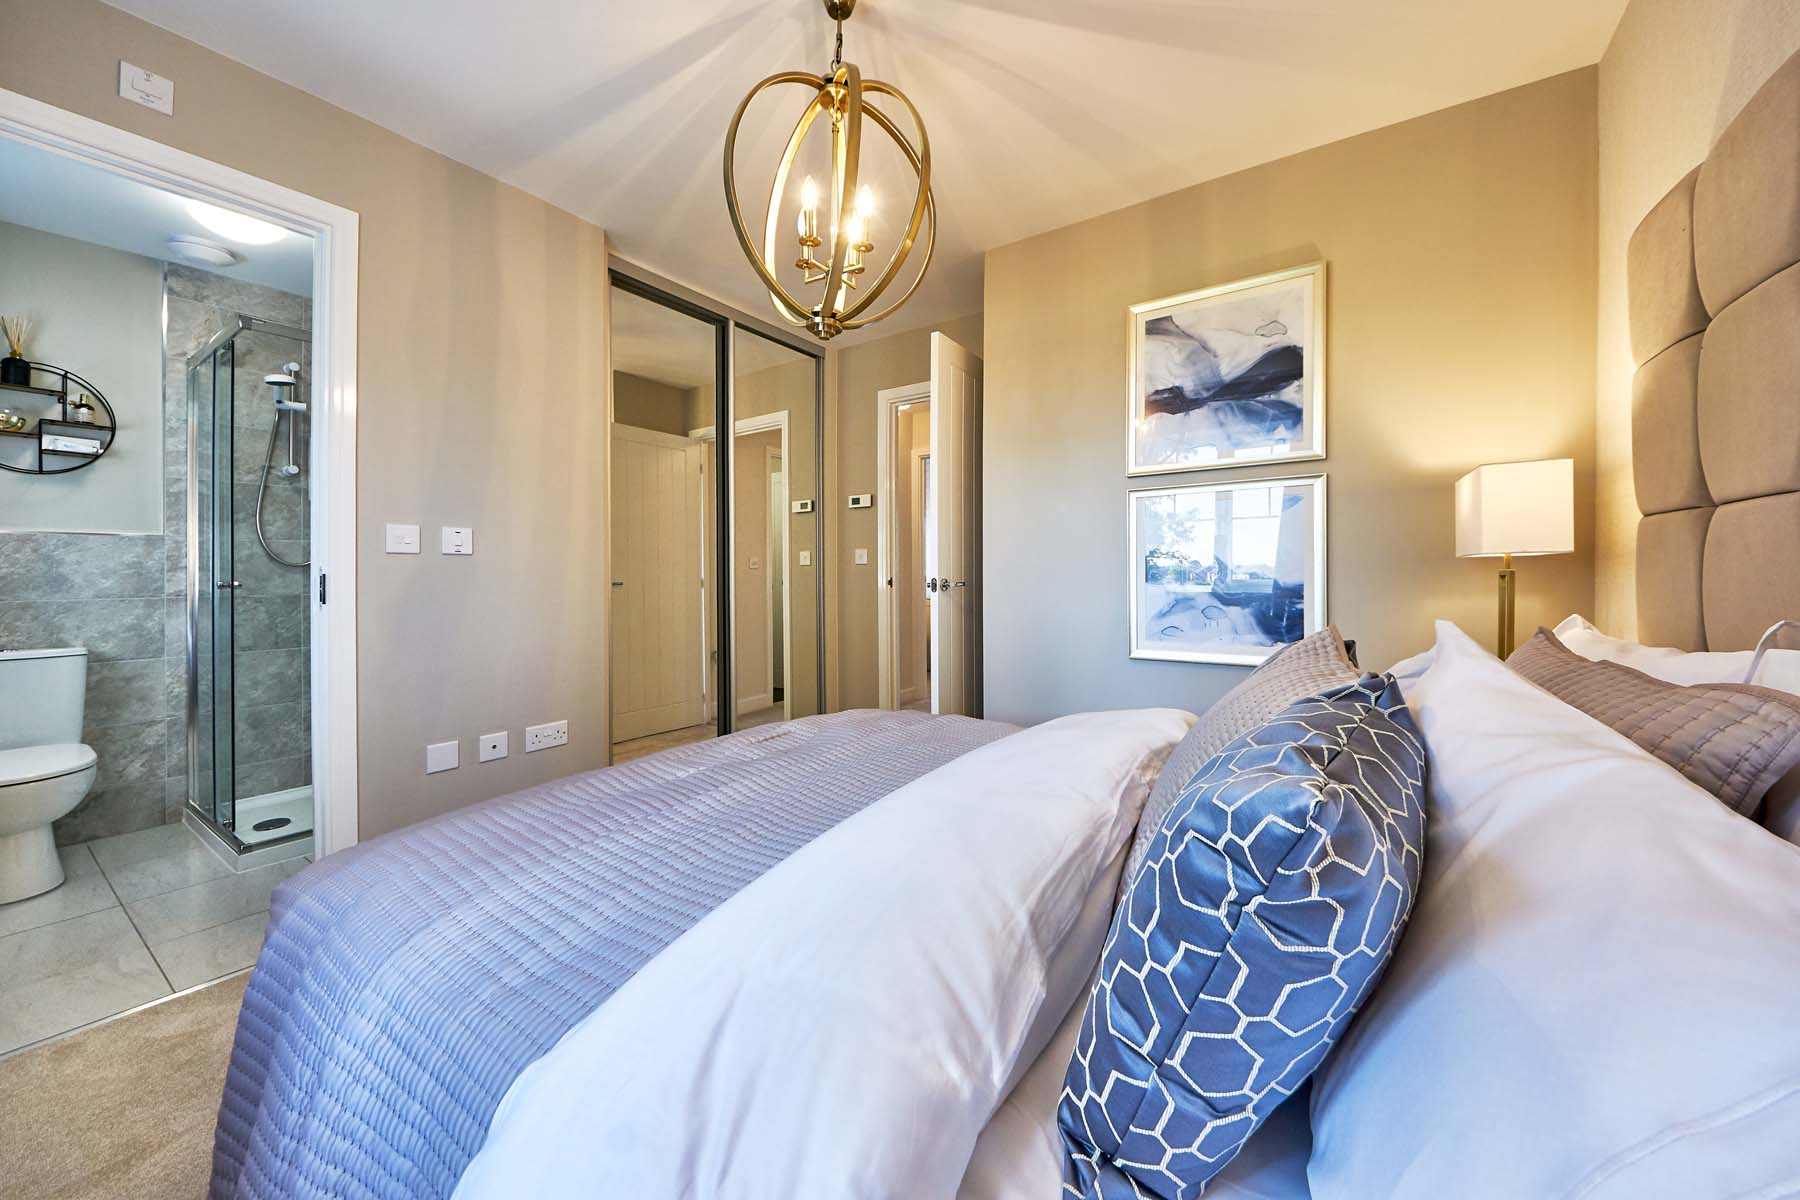 Main bedroom - TW-Burleyfields-GosfordSH-photography-17